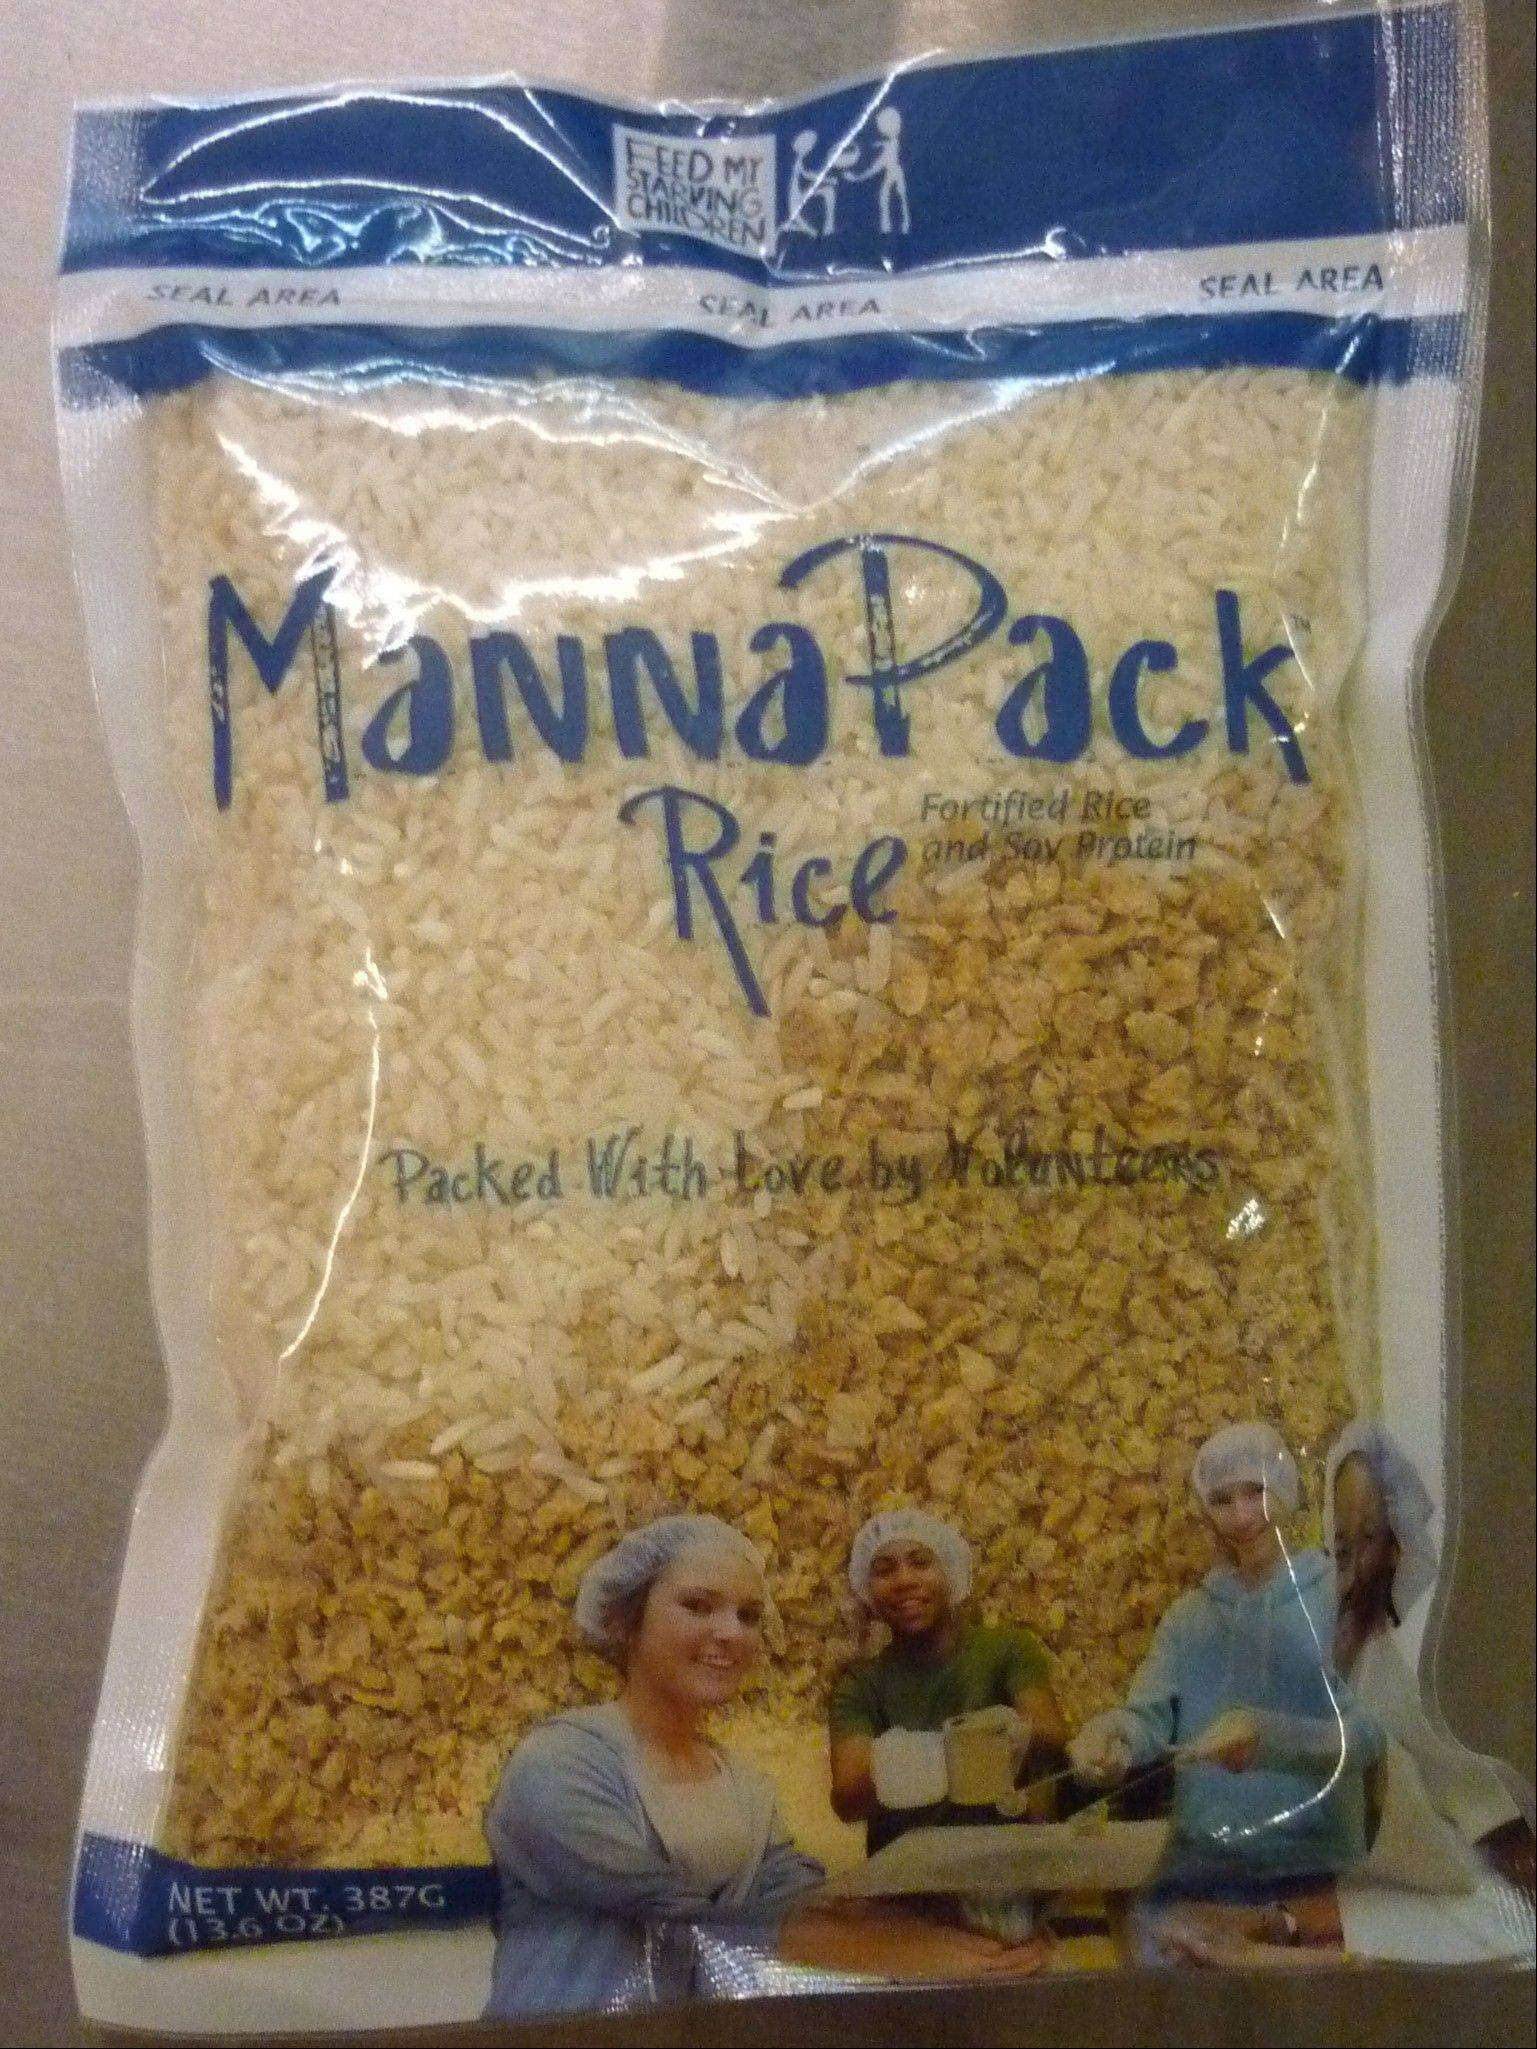 One MannaPack Rice package feeds one person for a week or a family of six for one day at a cost of 22 cents a meal.